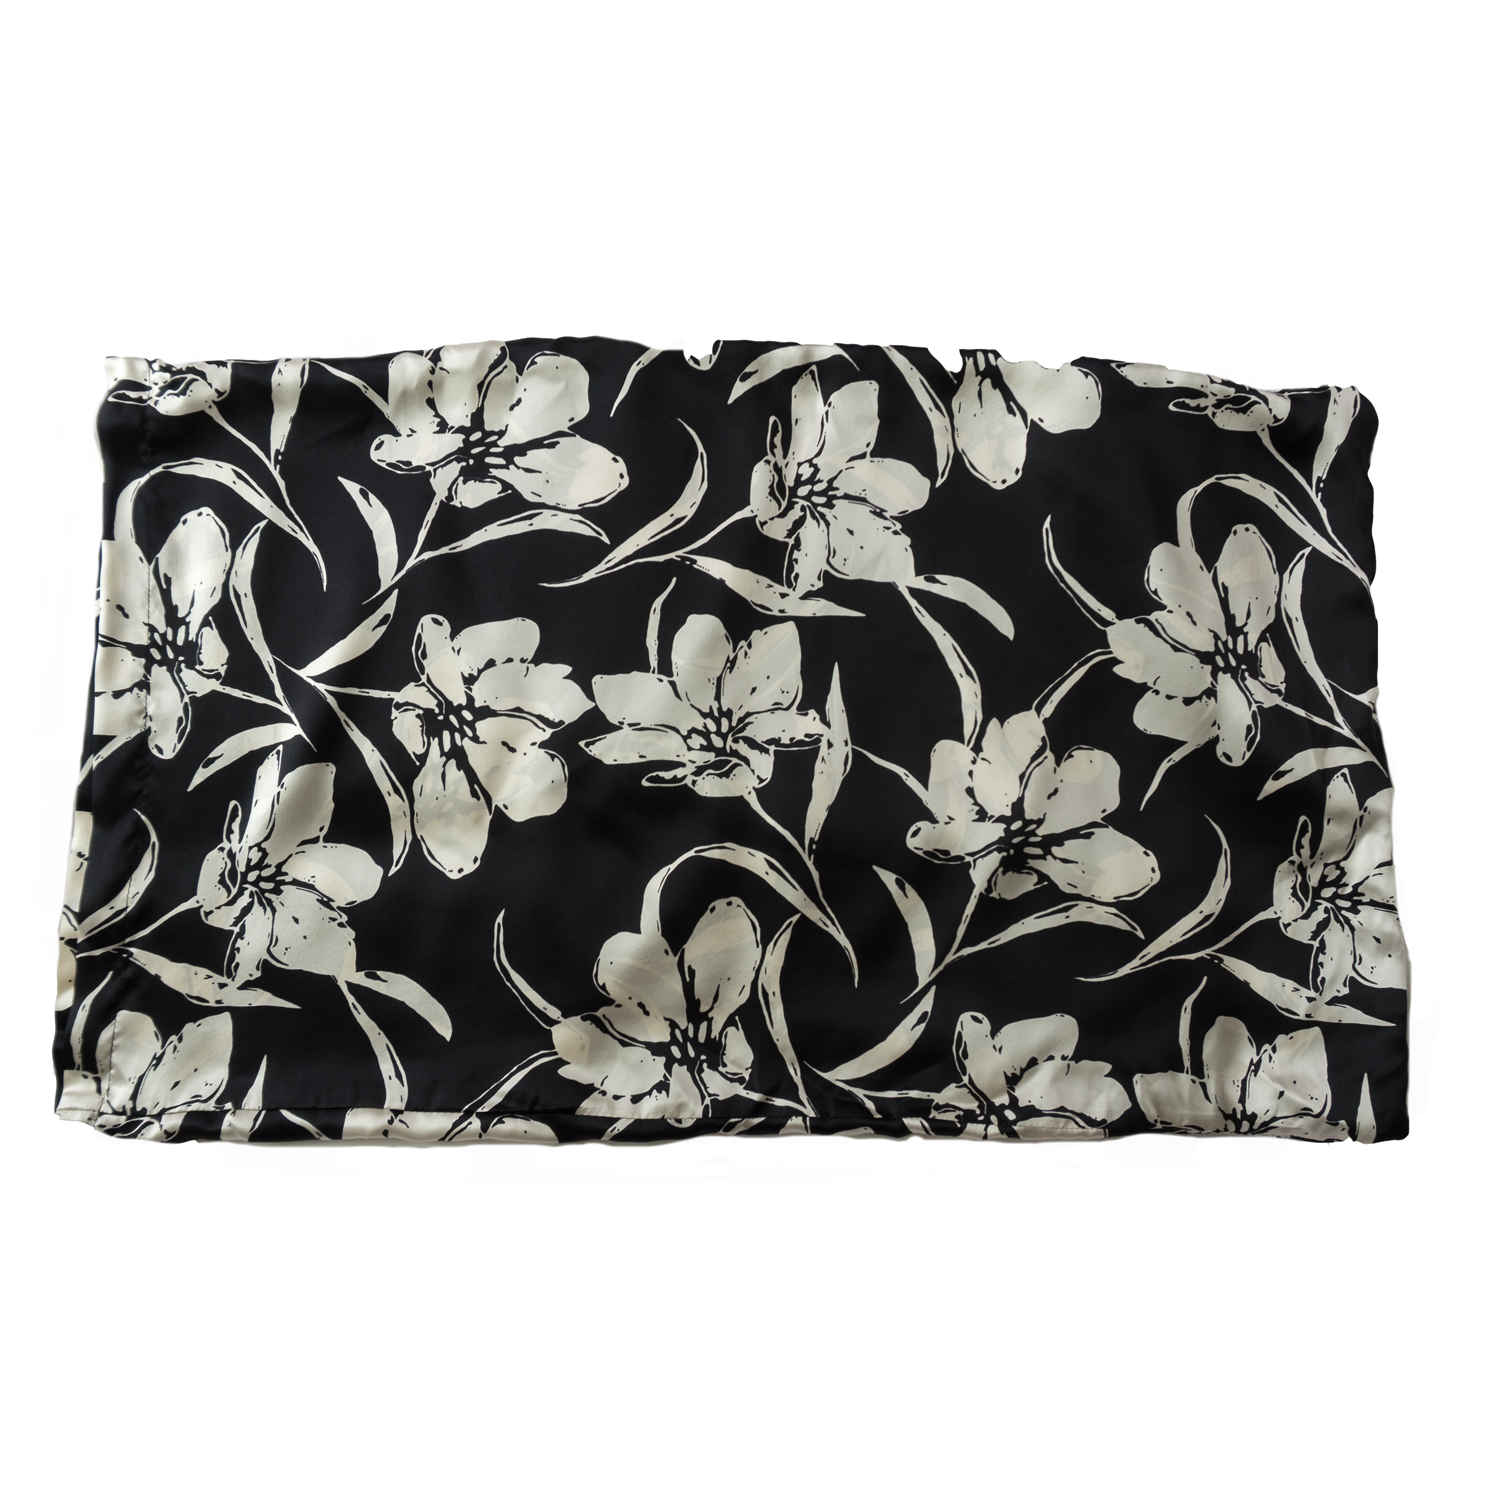 Black & White Floral Silk Pillow Case - A.M.